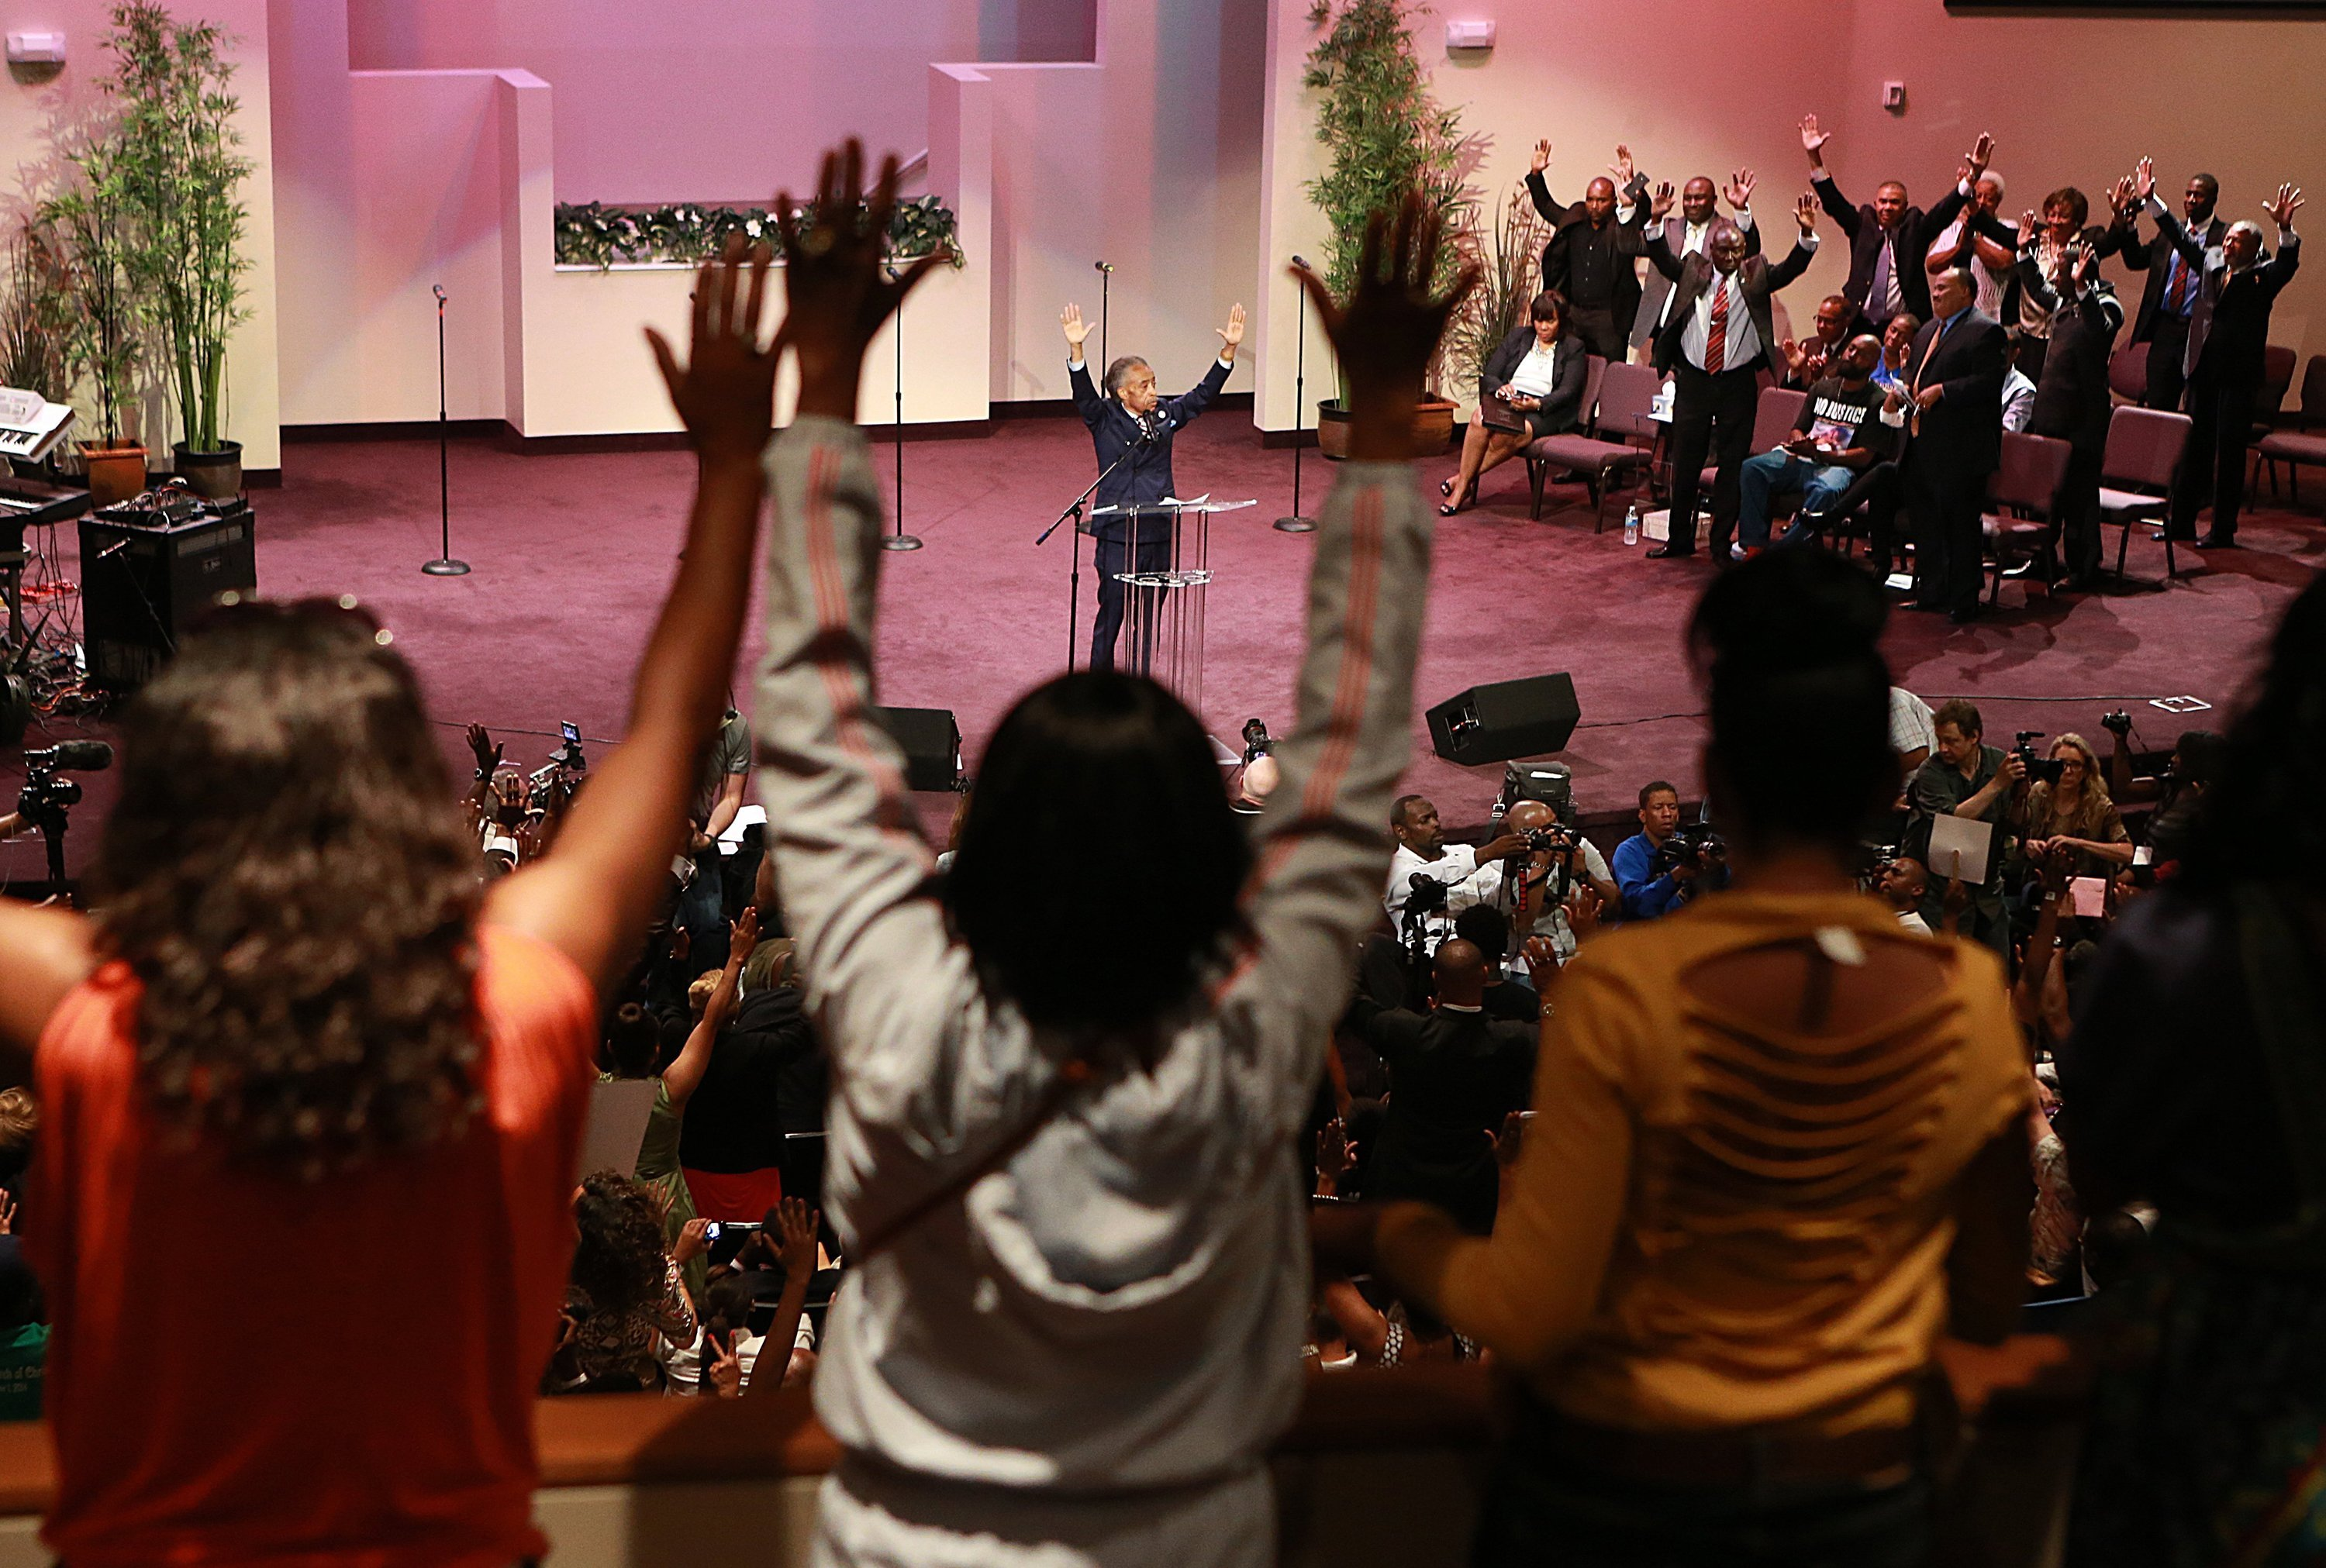 Rev. Al Sharpton speaks during a rally for justice for Michael Brown at Greater Grace Church in Ferguson, Mo., on Aug. 17, 2014.